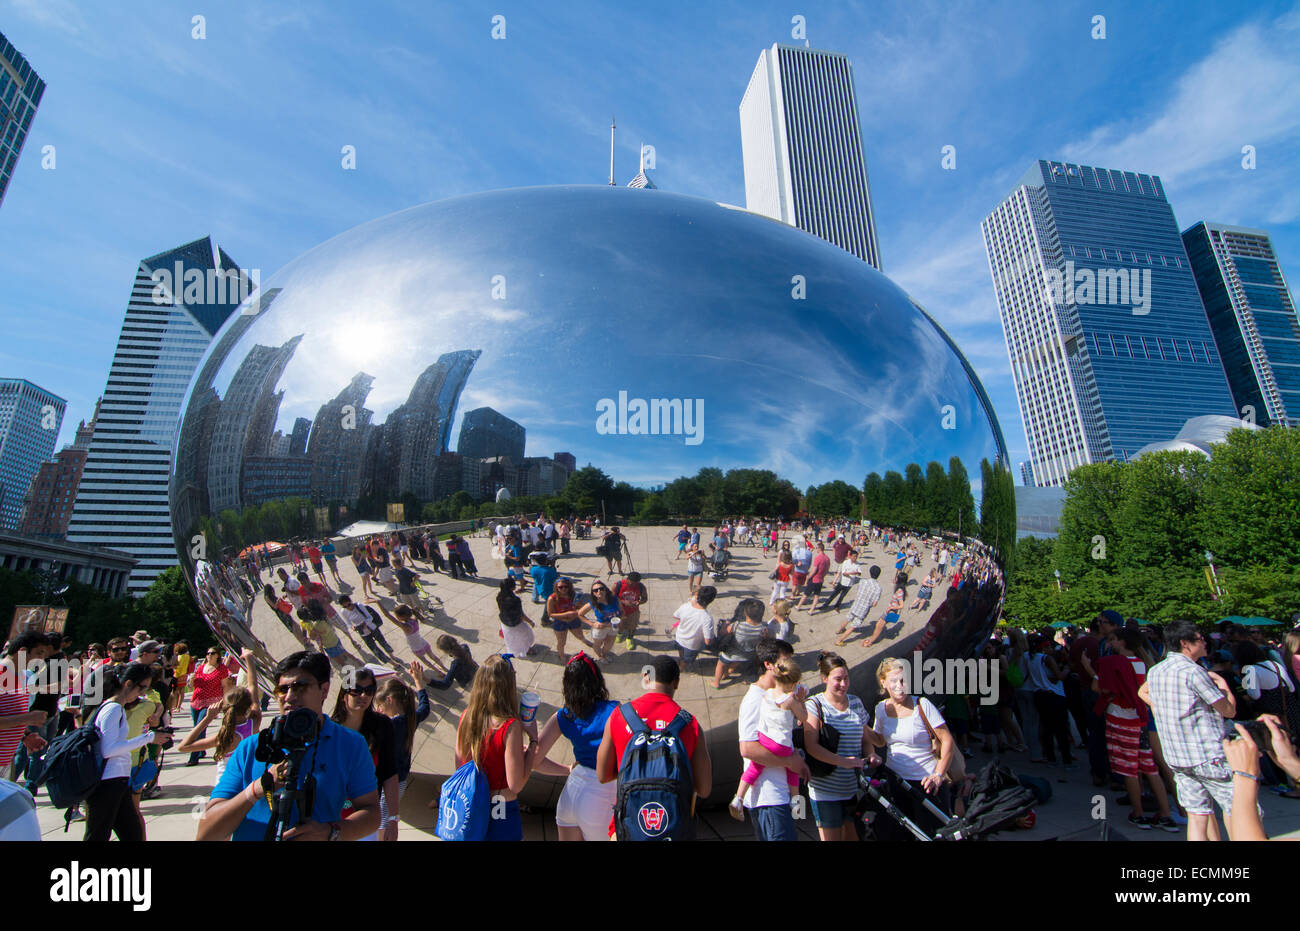 Chicago Illinois Millennium Park with famous Cloud Gate sculpture called The Bean with skyline in background skyscrapers - Stock Image